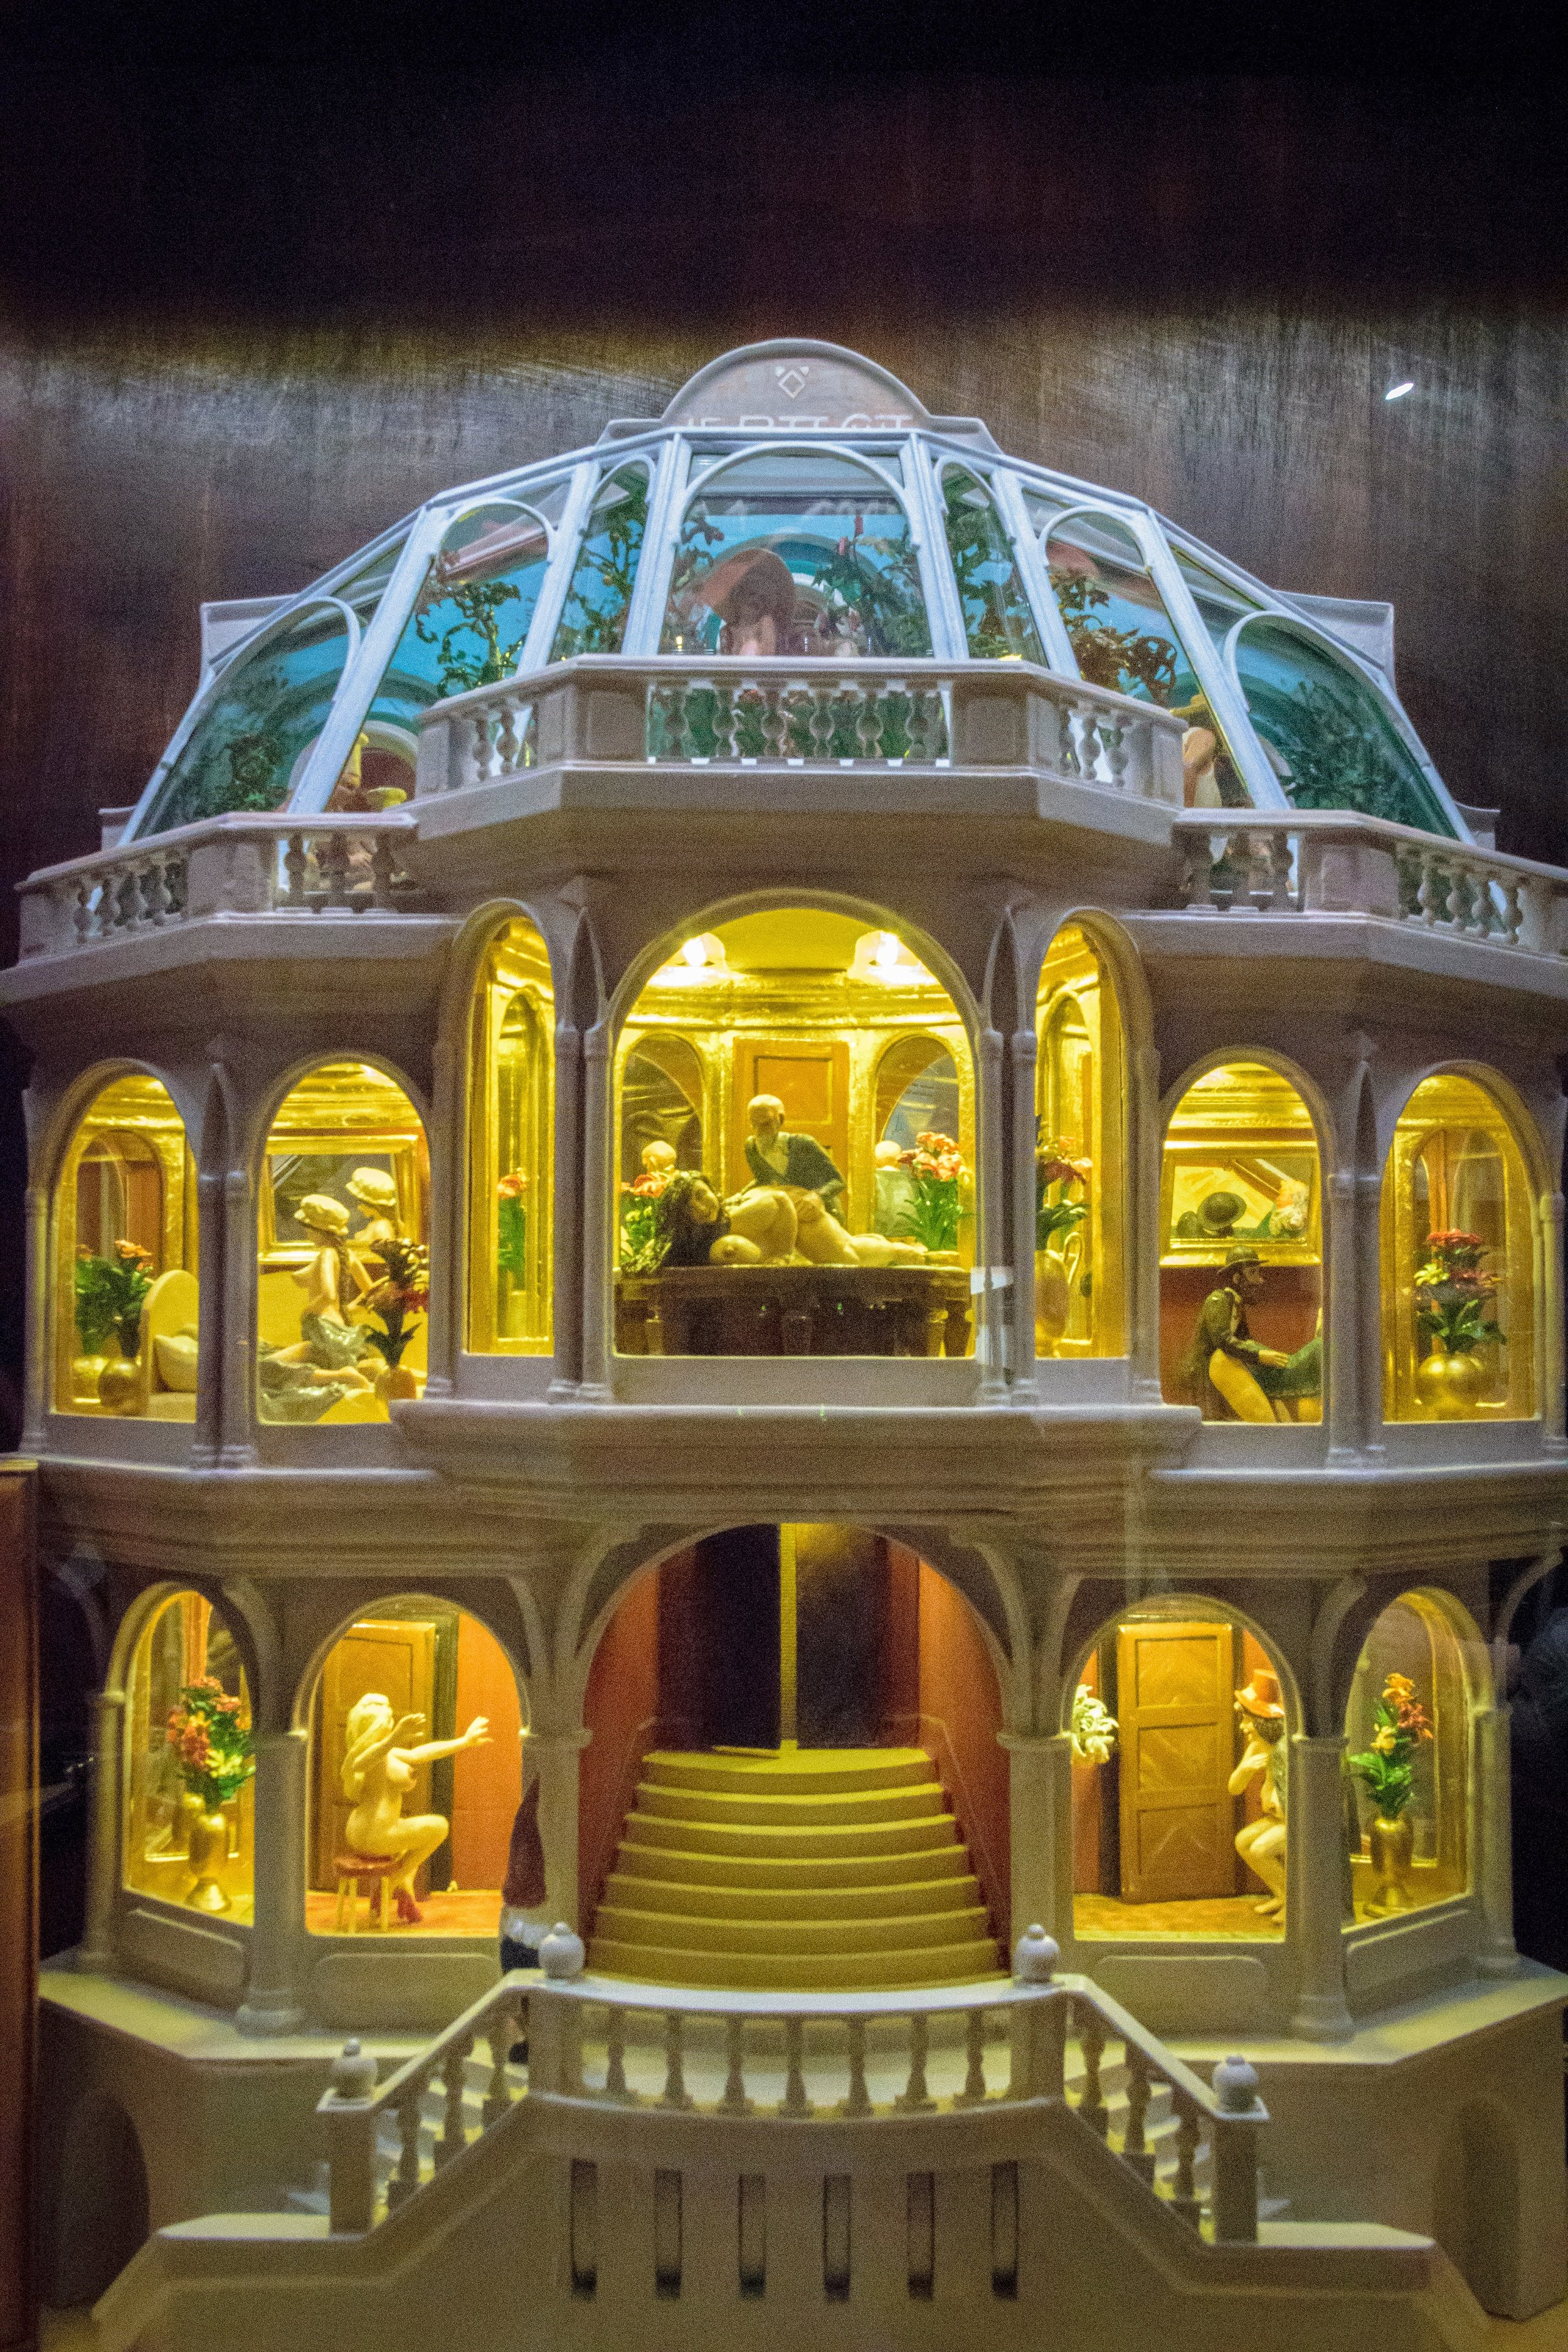 the most fascinating dollhouse I've ever seen